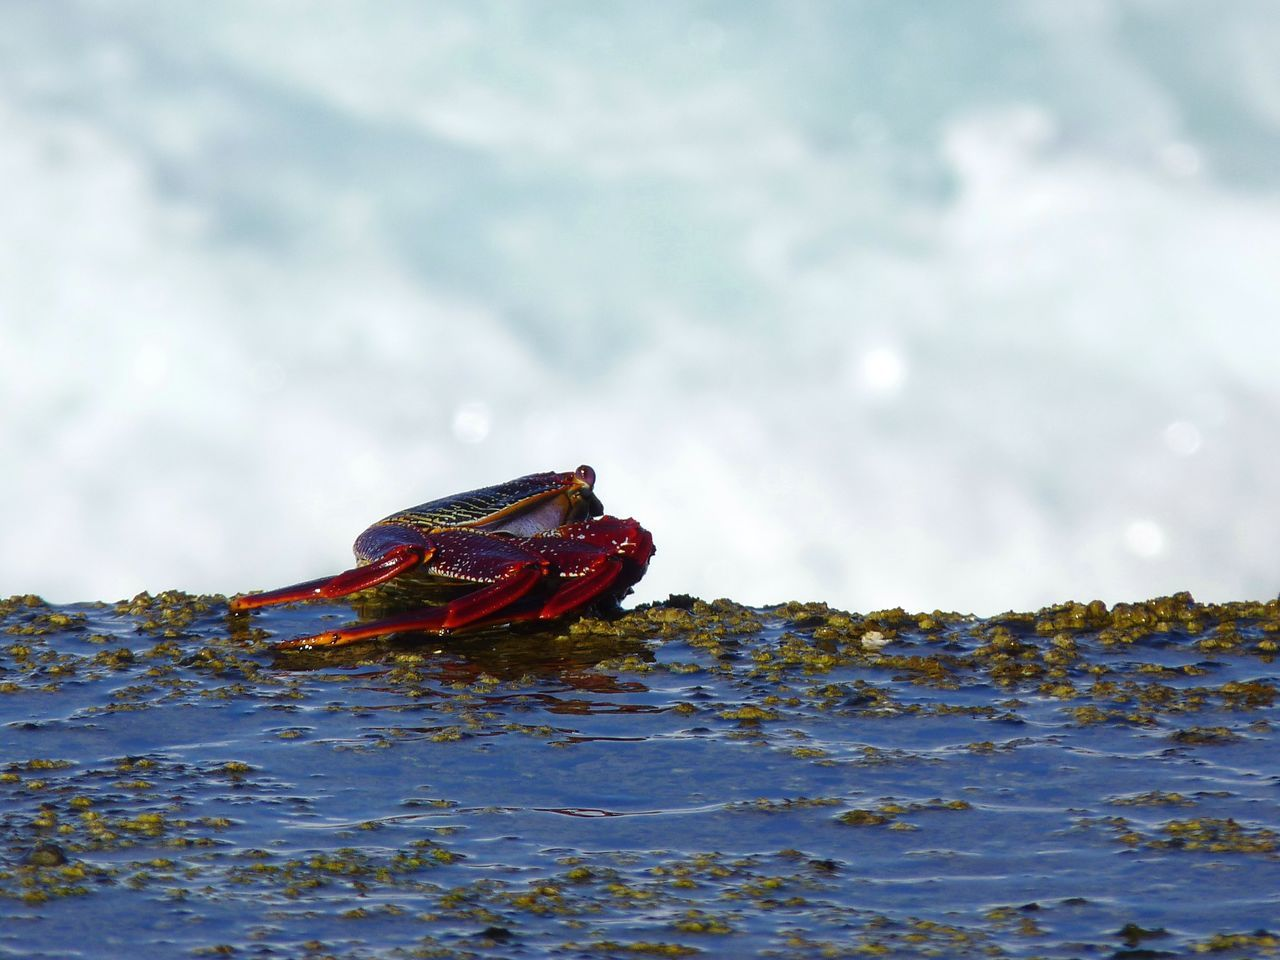 Animal Animal Themes Beach Cloud - Sky Crab Day Gran Canaria Nature Nautical Vessel No People Ocean Oceanside One Animal Outdoors Red Crab Sky Water Waves Waves, Ocean, Nature